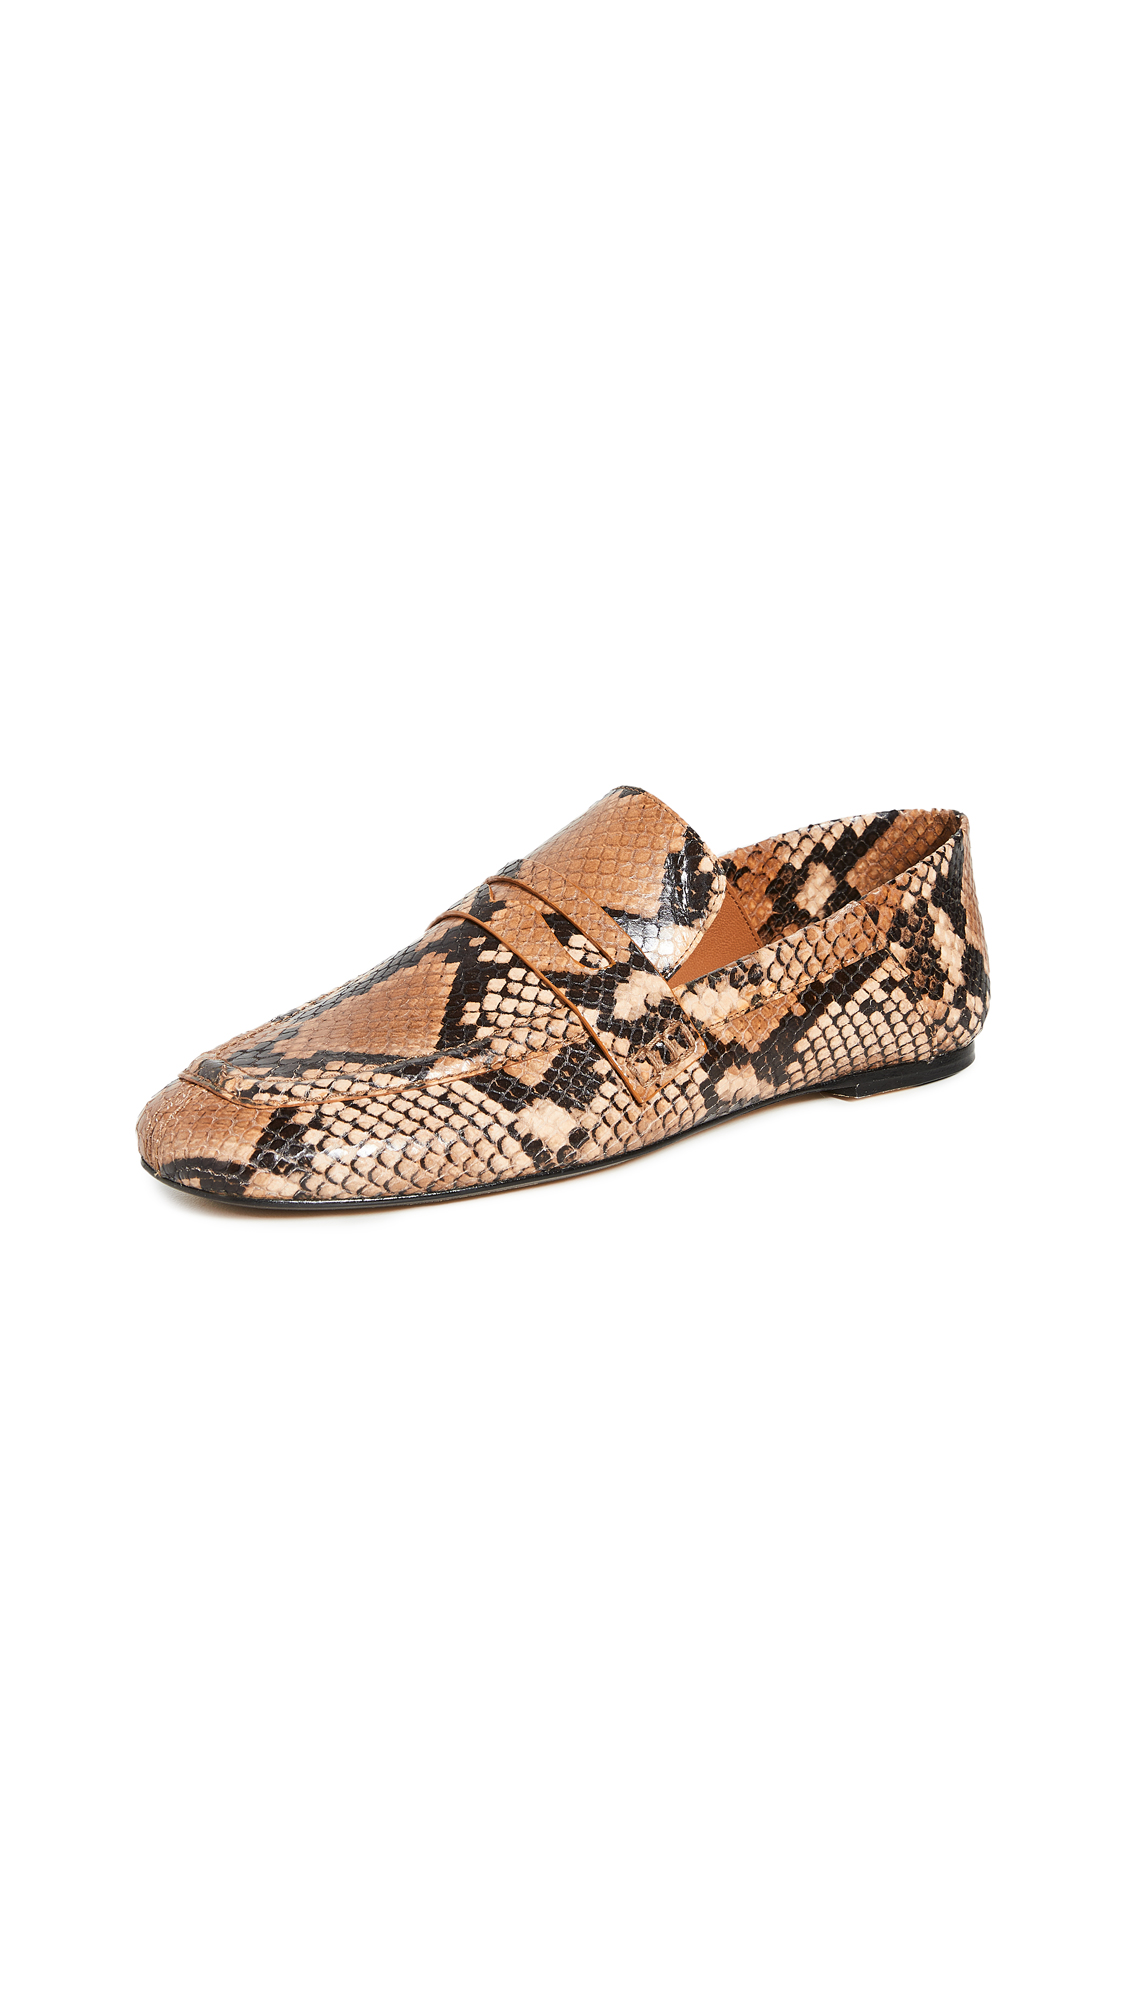 Joseph Snakeskin Loafers – 40% Off Sale